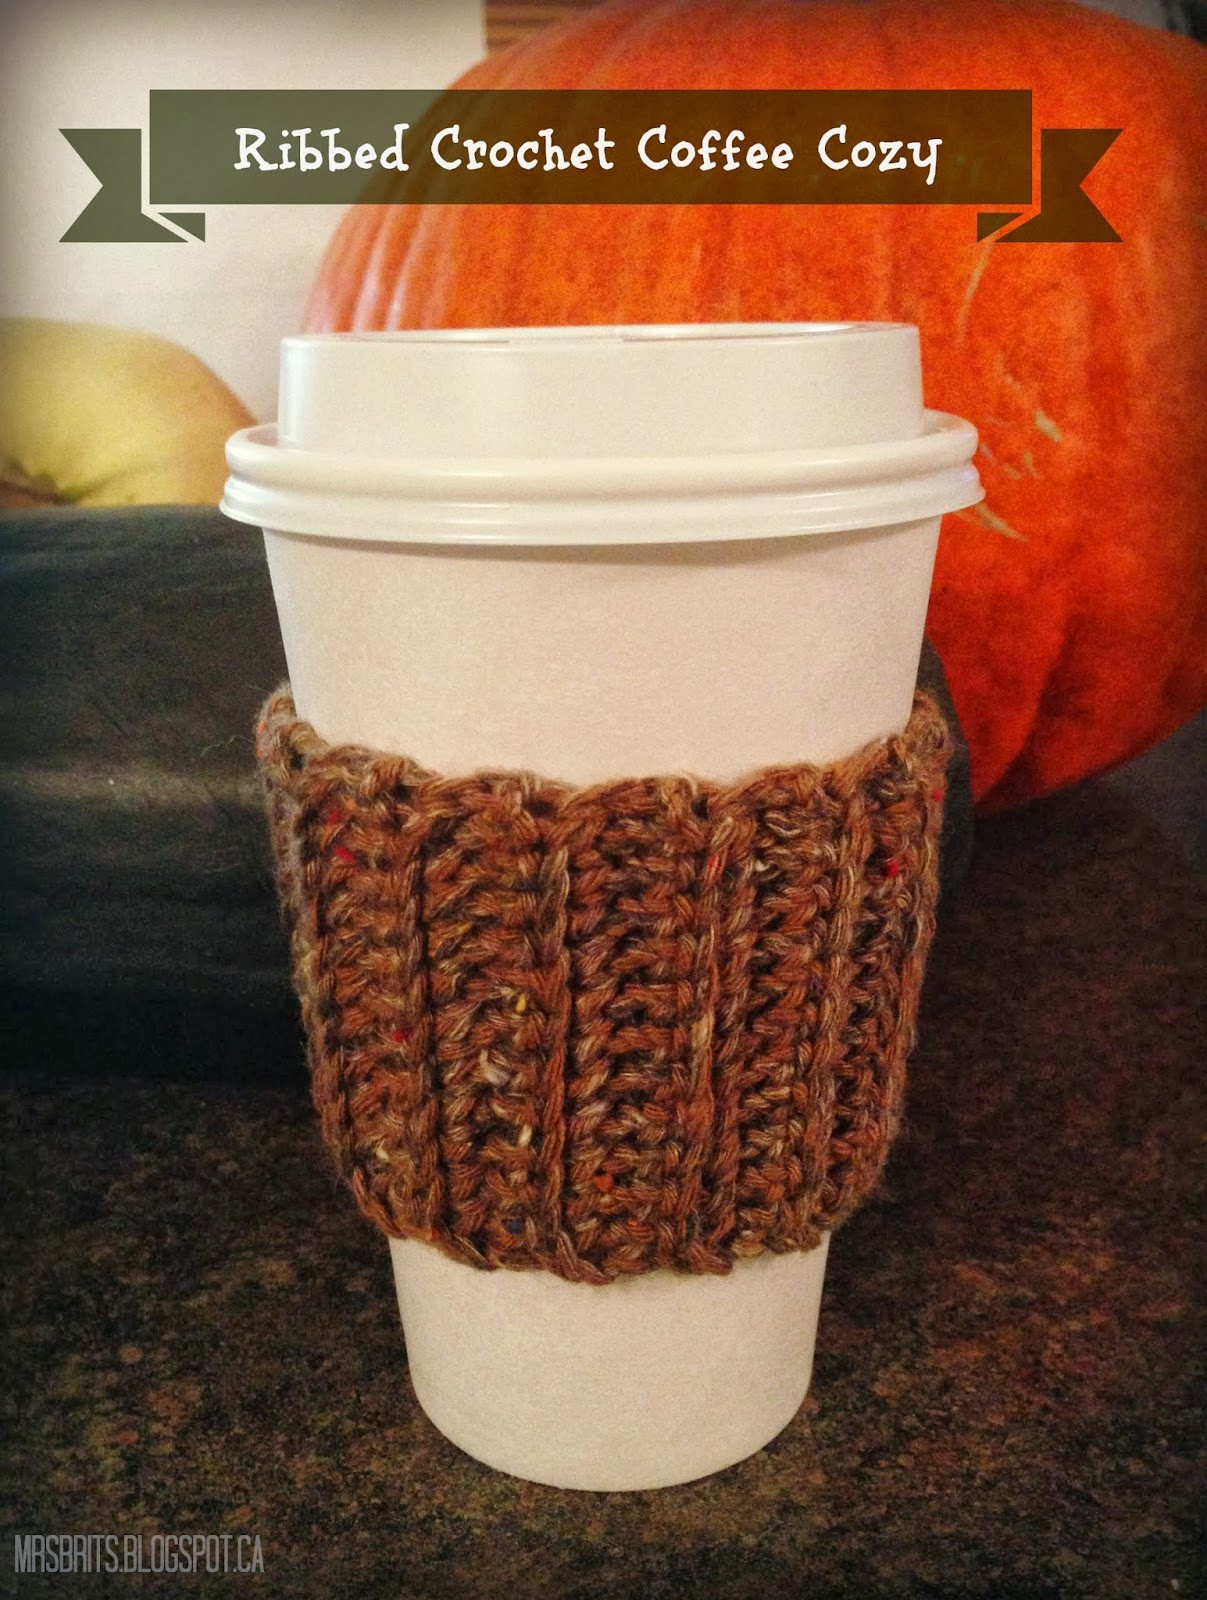 Crochet Coffee Cup Cozy Unique Mrsbrits Ribbed Coffee Cozy Crochet Pattern Of Crochet Coffee Cup Cozy Luxury Happy Holidays Handmade Gift Idea Crochet Heart Coffee